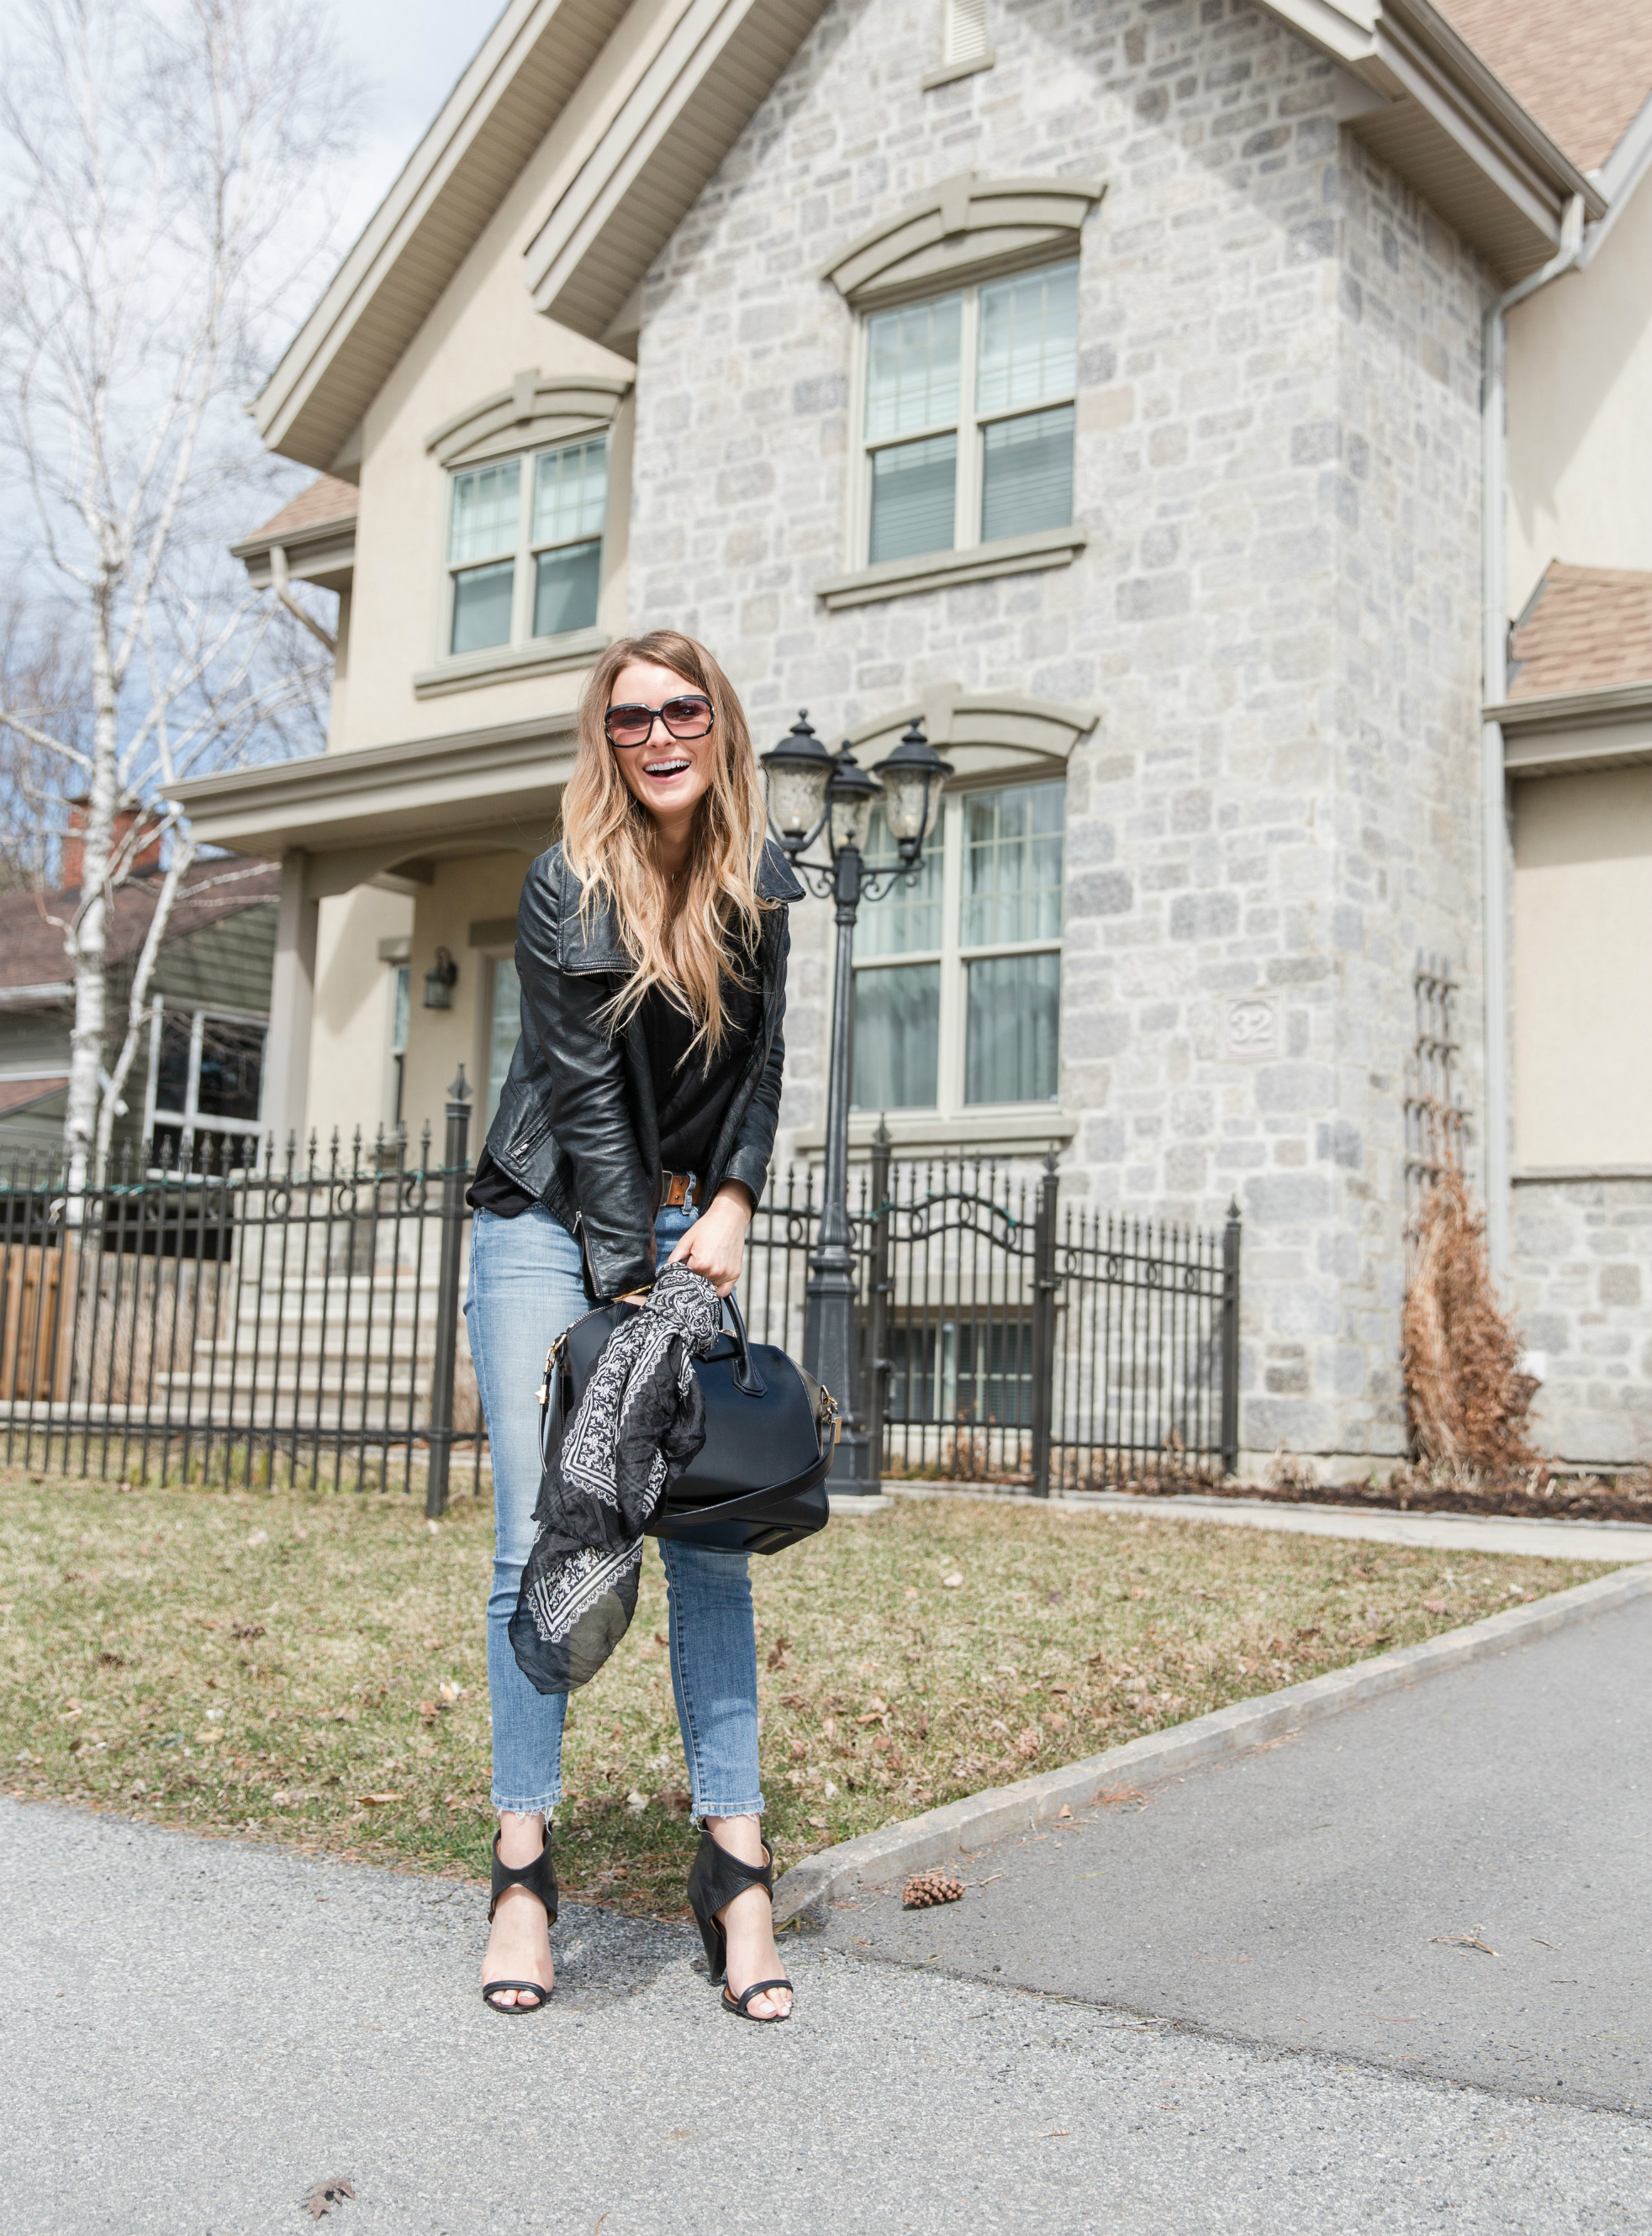 amanda conquer, life with aco, Ottawa blogger, spring outfit on street style